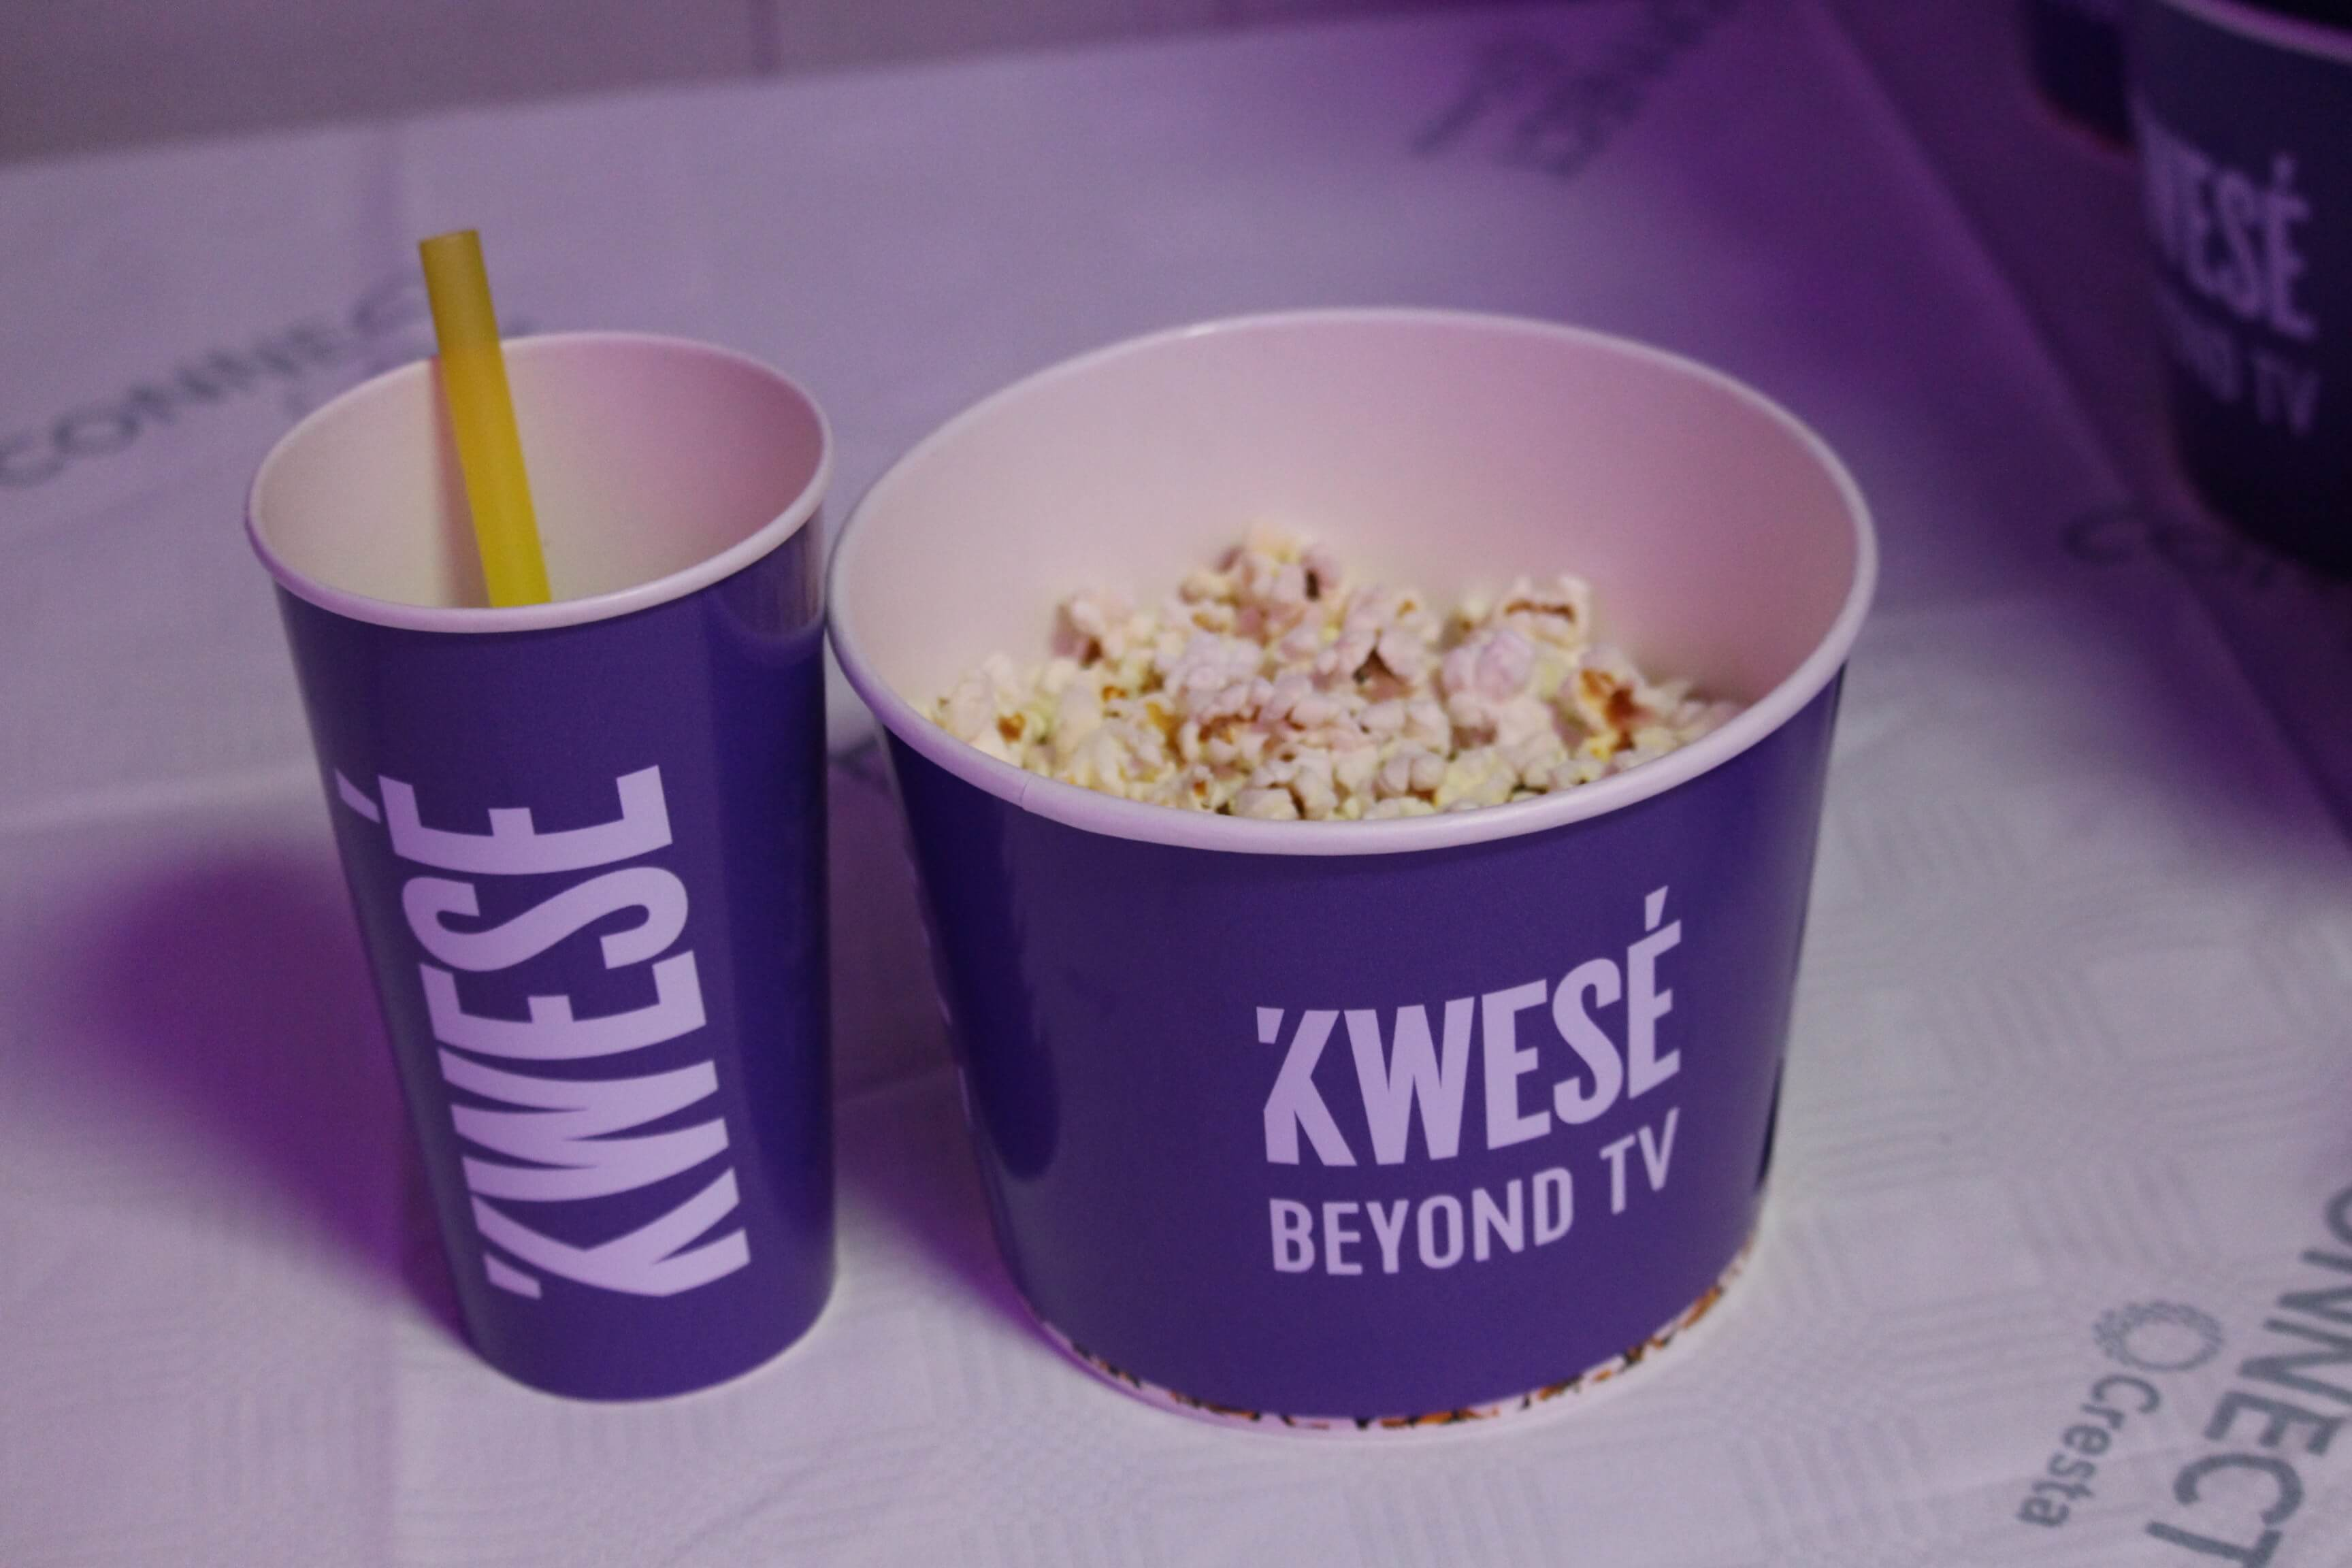 Kwese branded popcorn packaging